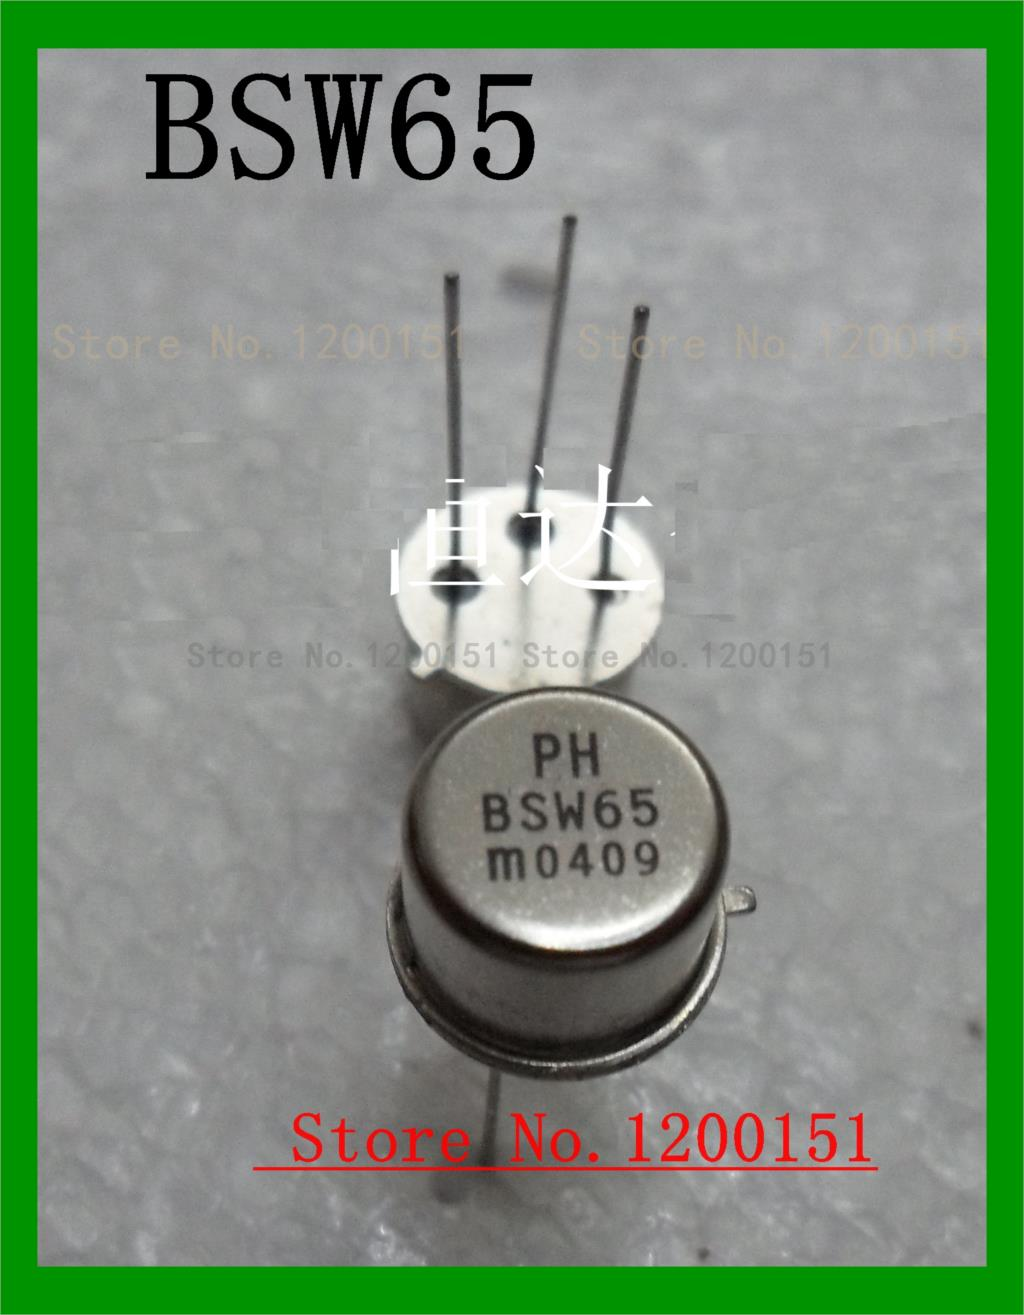 BSW65 BSW66A BSW67 BSW67A BSW68A CAN-3